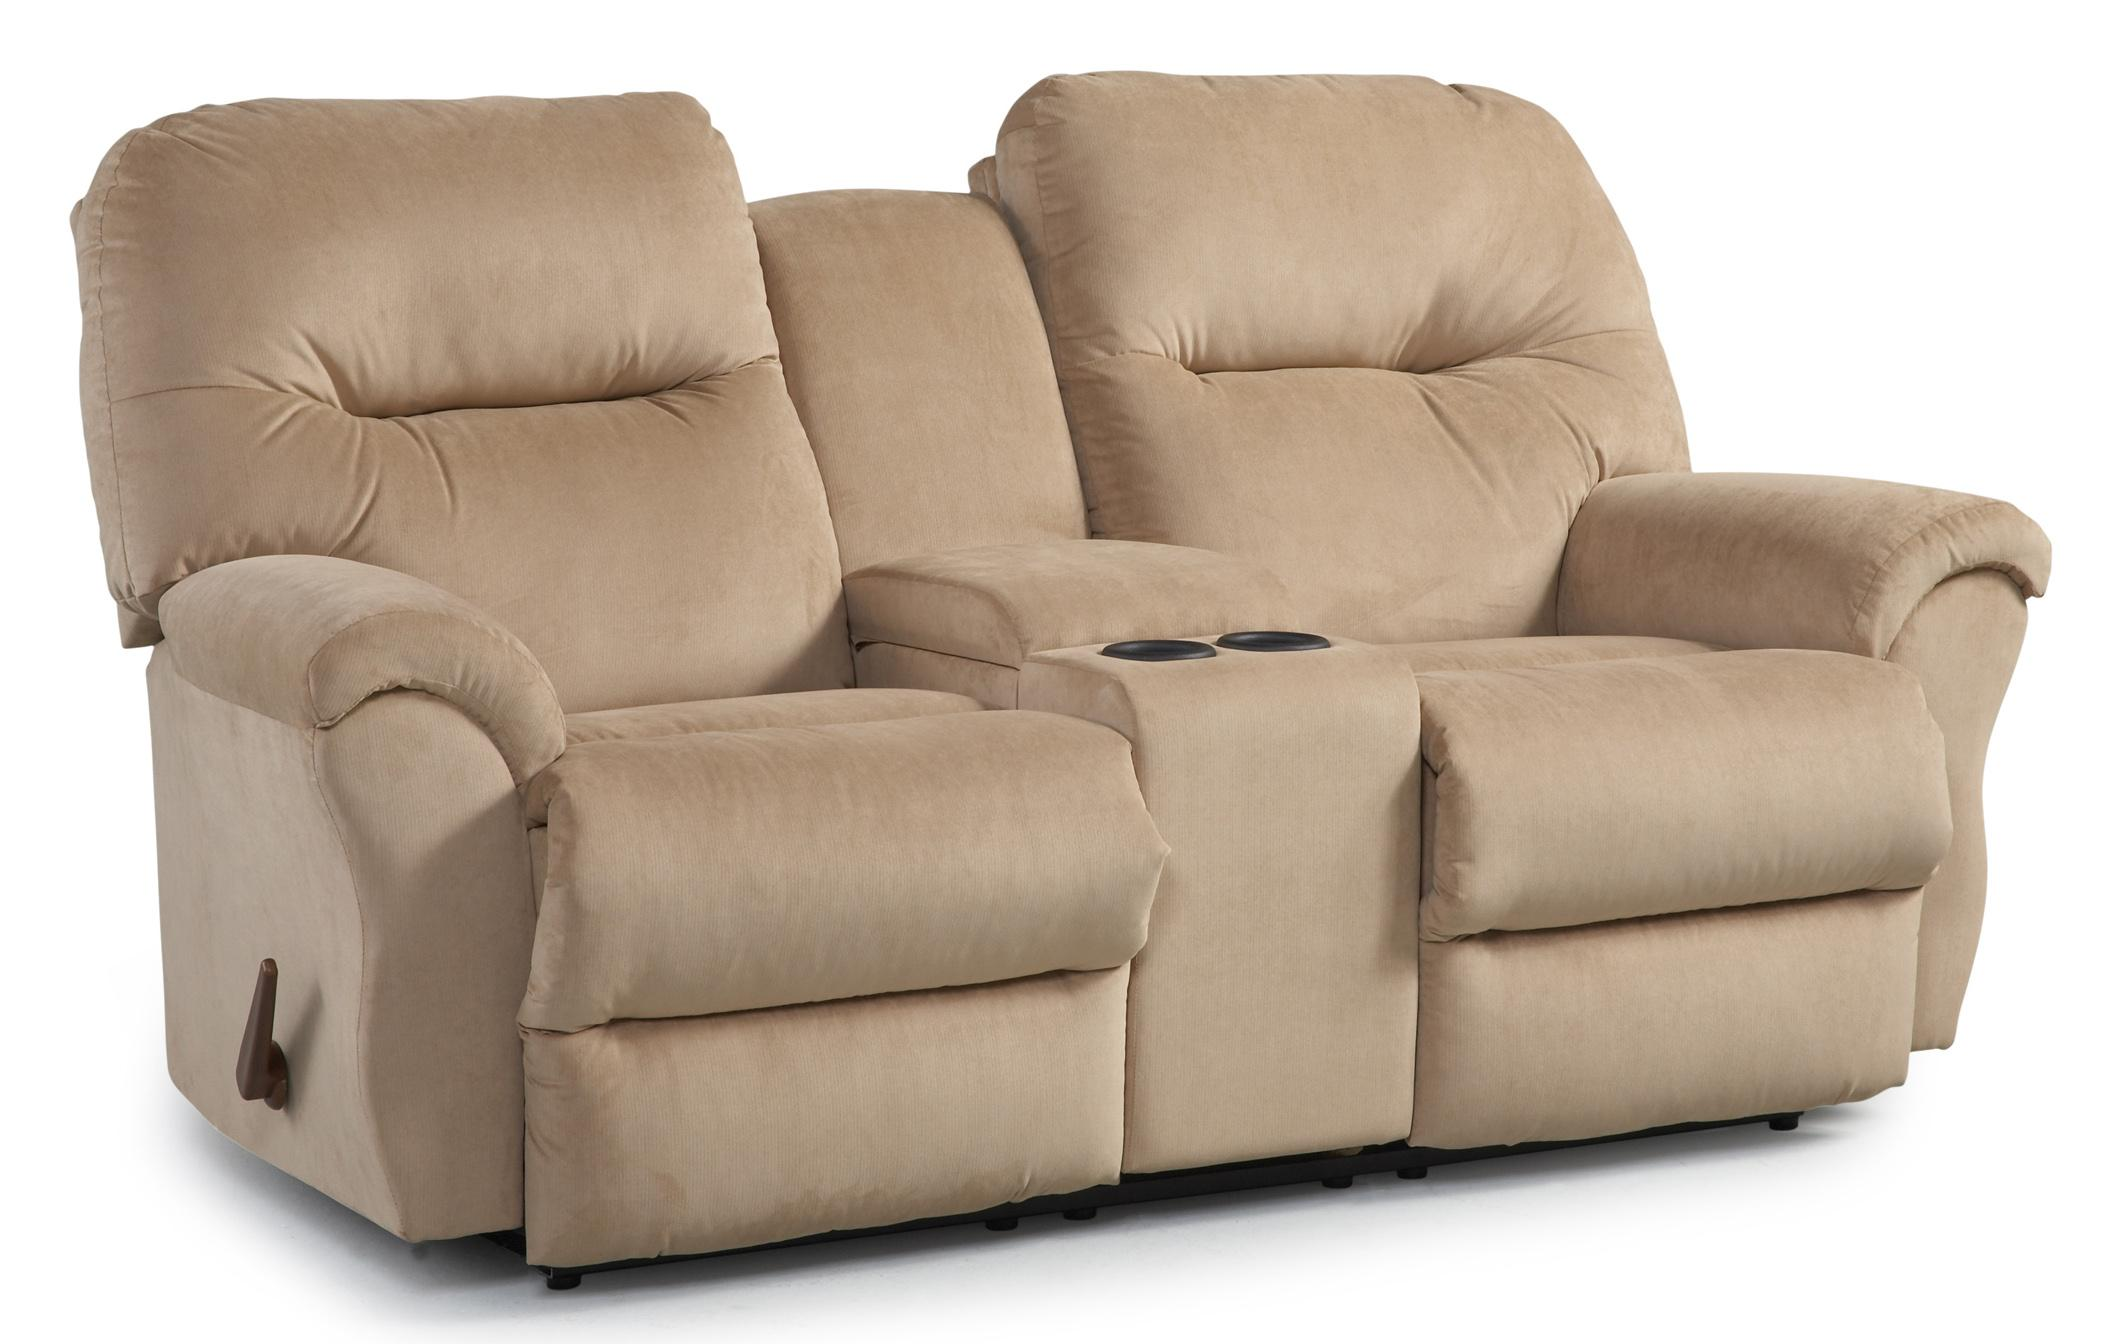 Bodie Rocking Reclining Loveseat With Storage Console By Best Home Furnishings Wolf Furniture